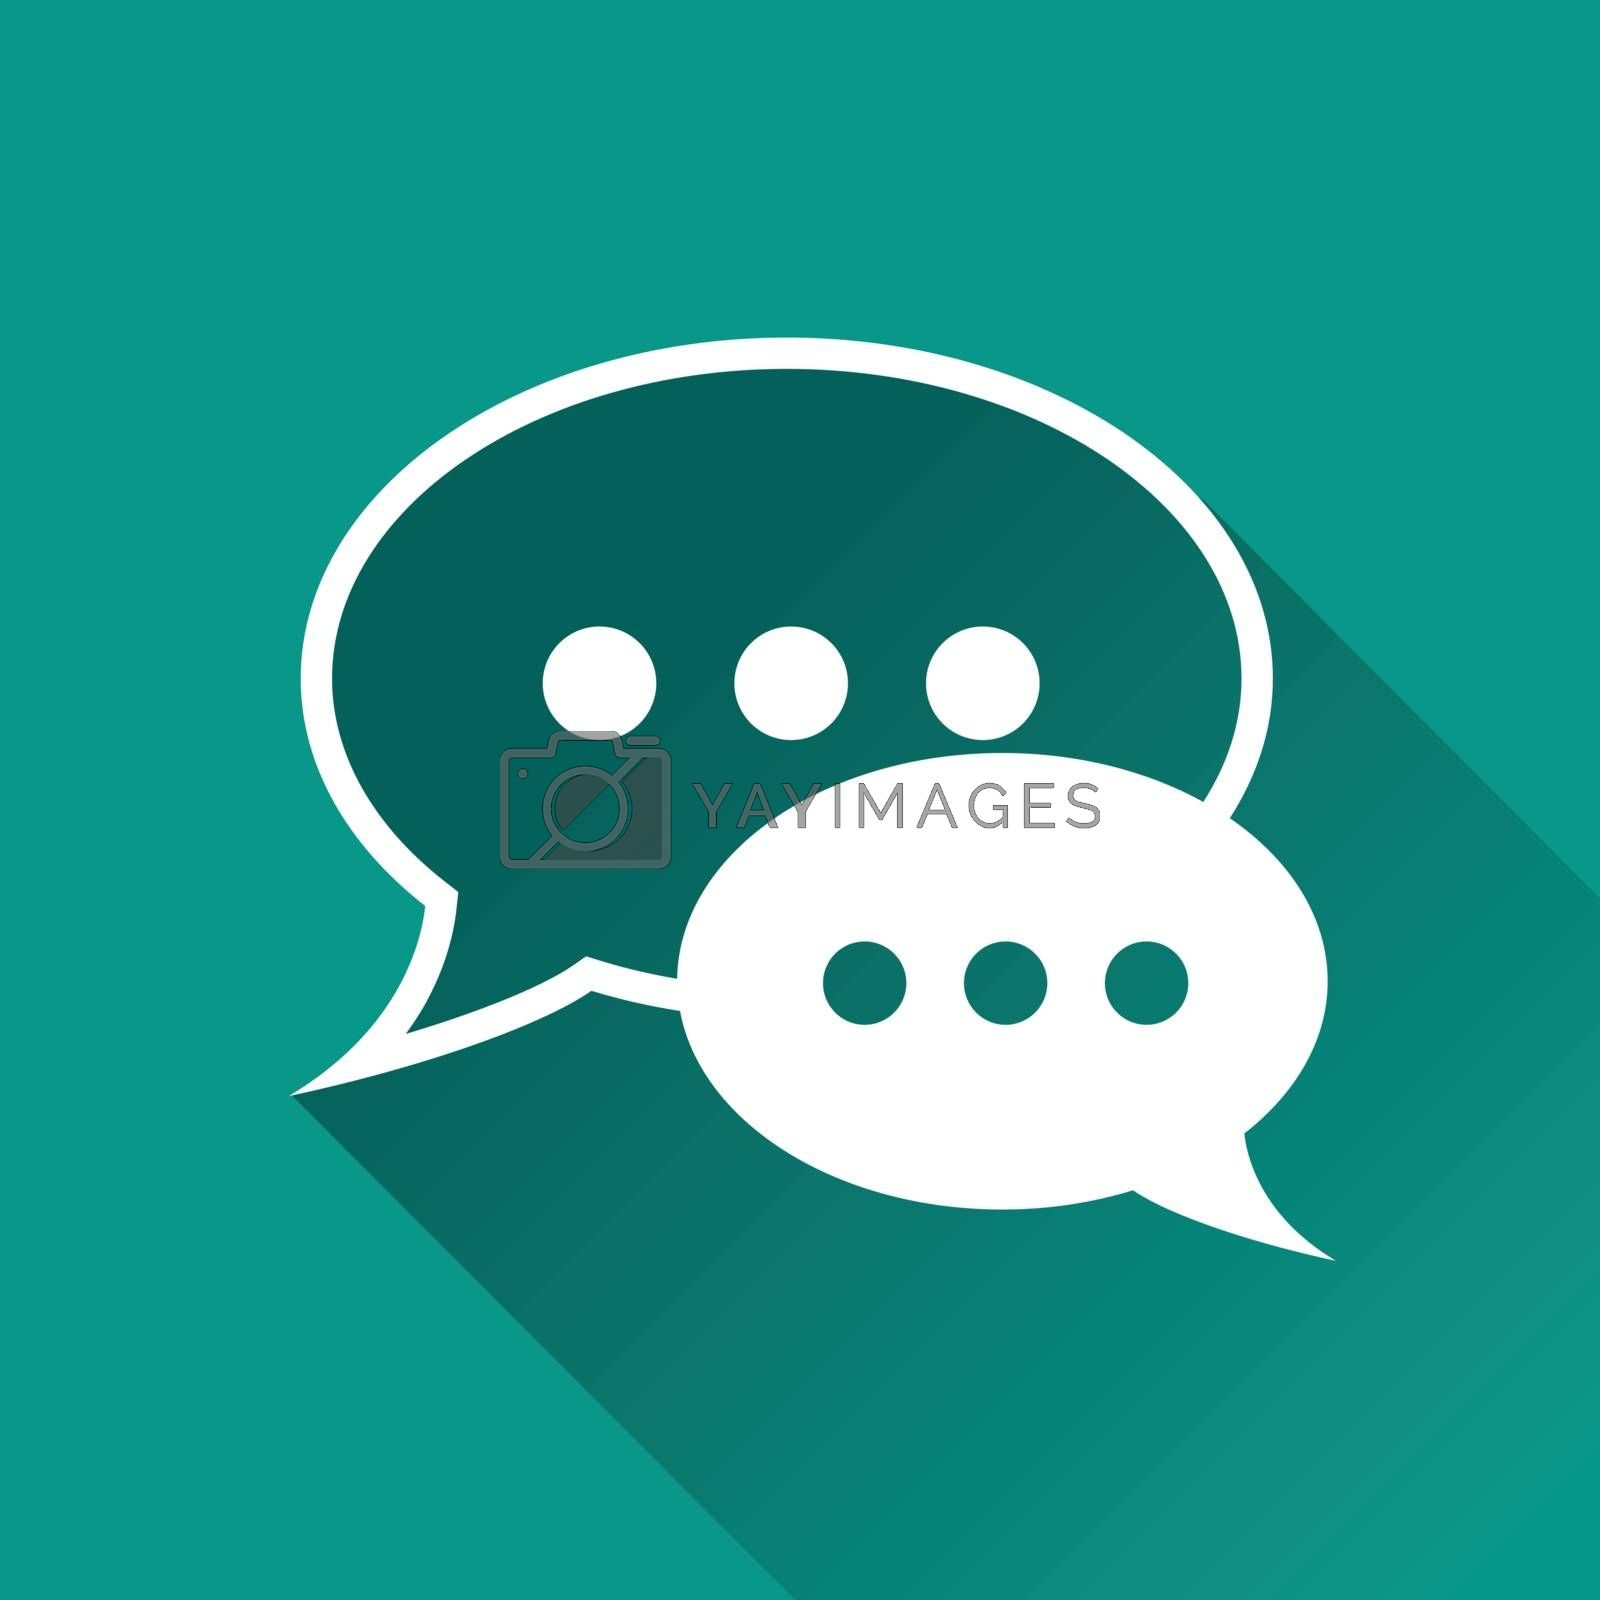 illustration of chat bubbles flat design icon